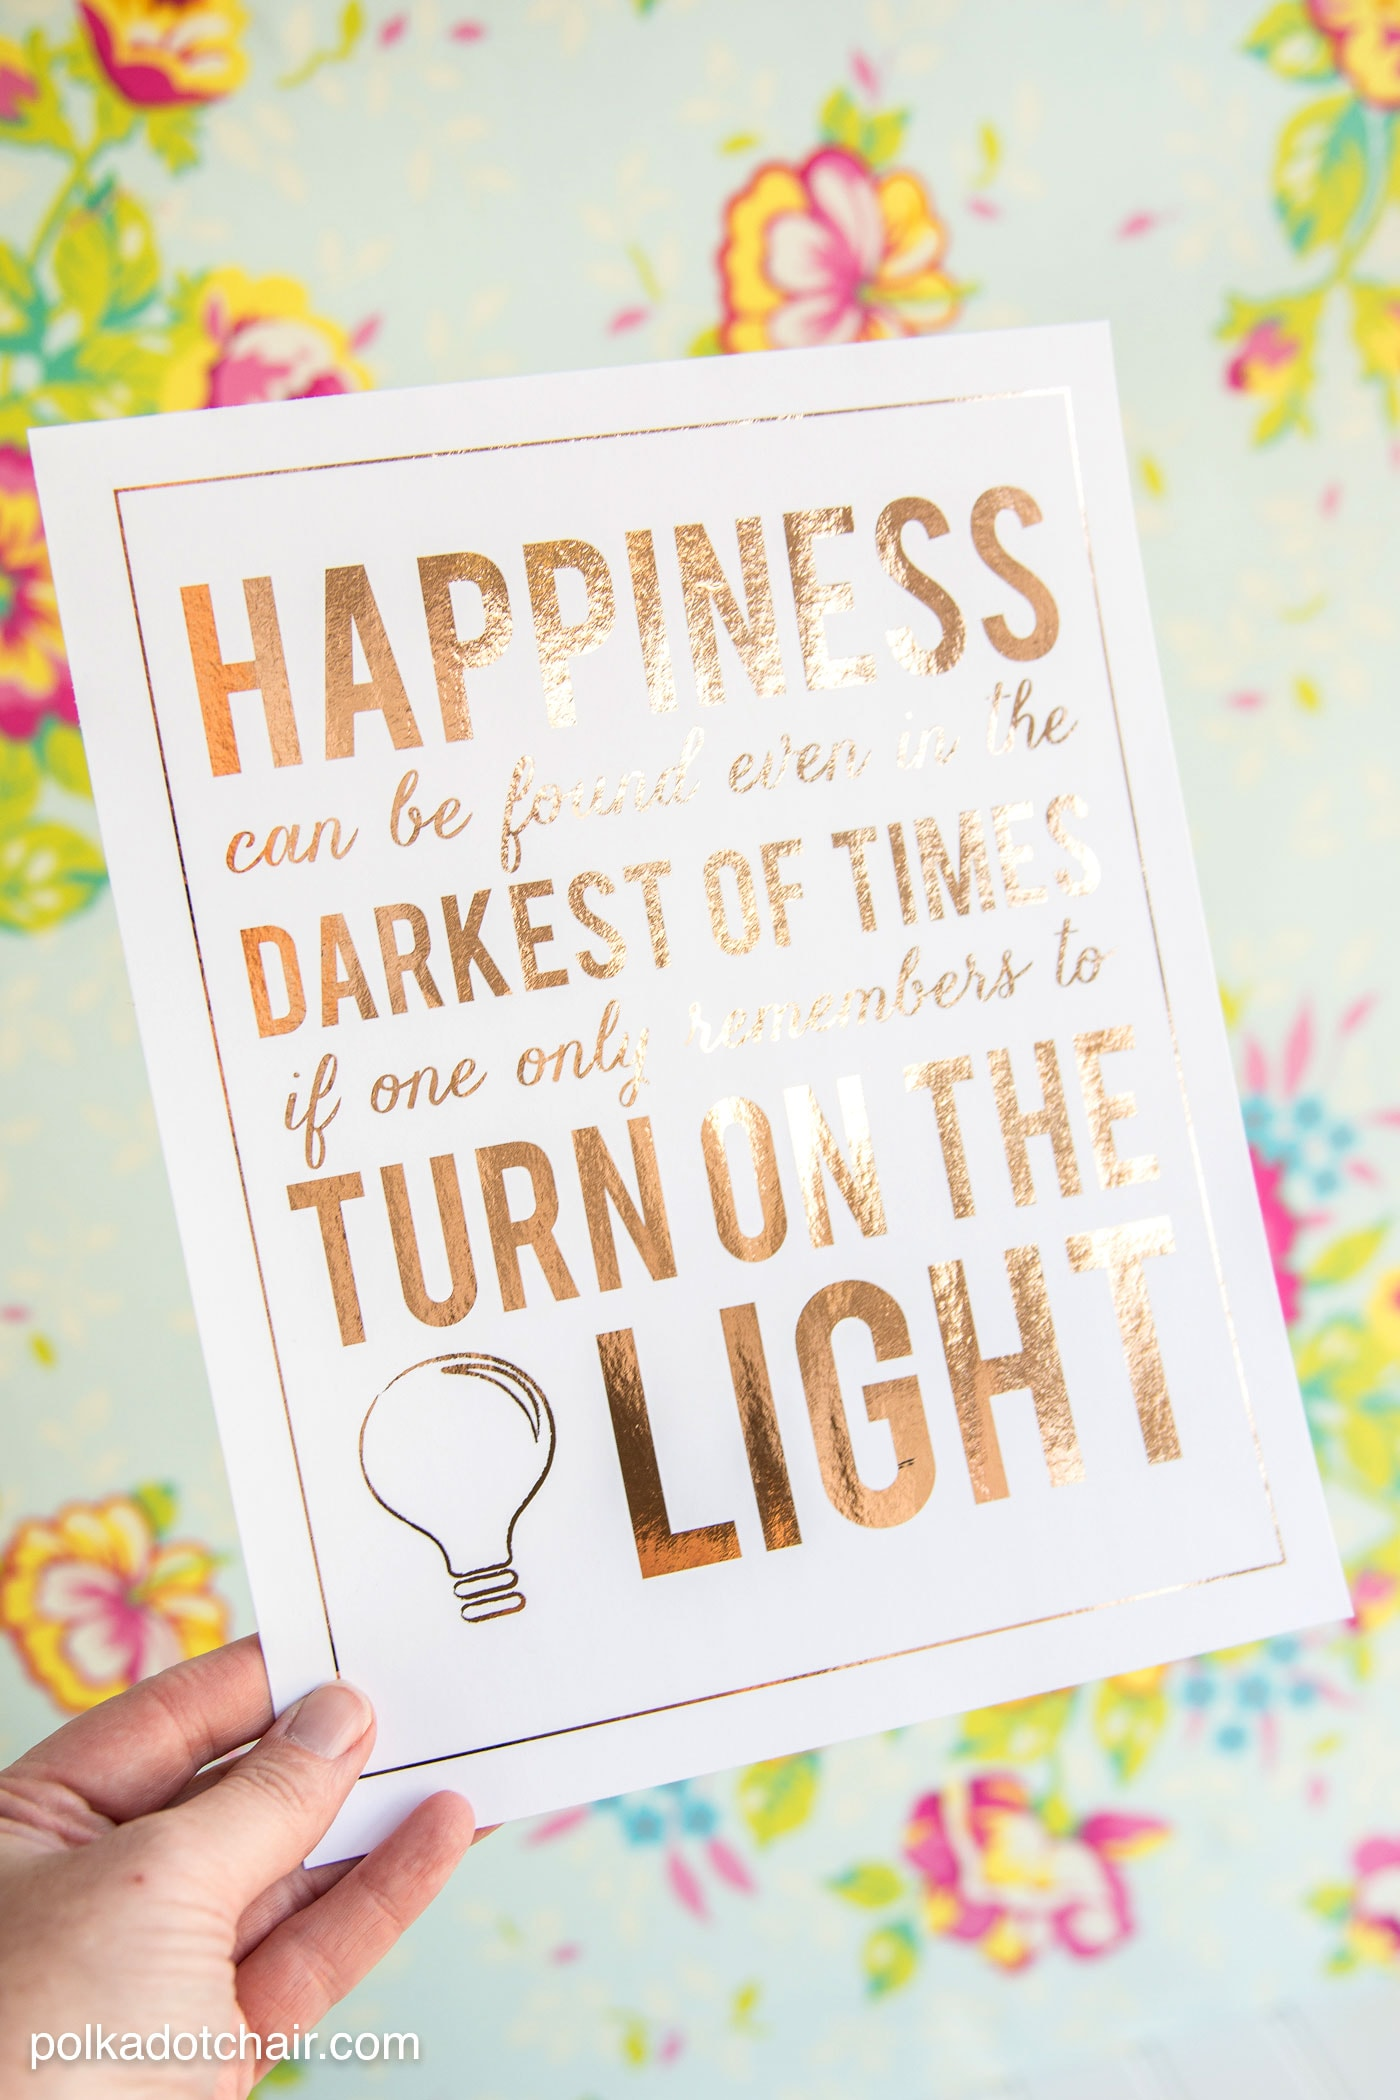 """Free Printable Quote from Harry Potter, """"Happiness can be found in the darkest of times if one only remembers to turn on the light"""" ... can be used with Minc Machines to add foil."""